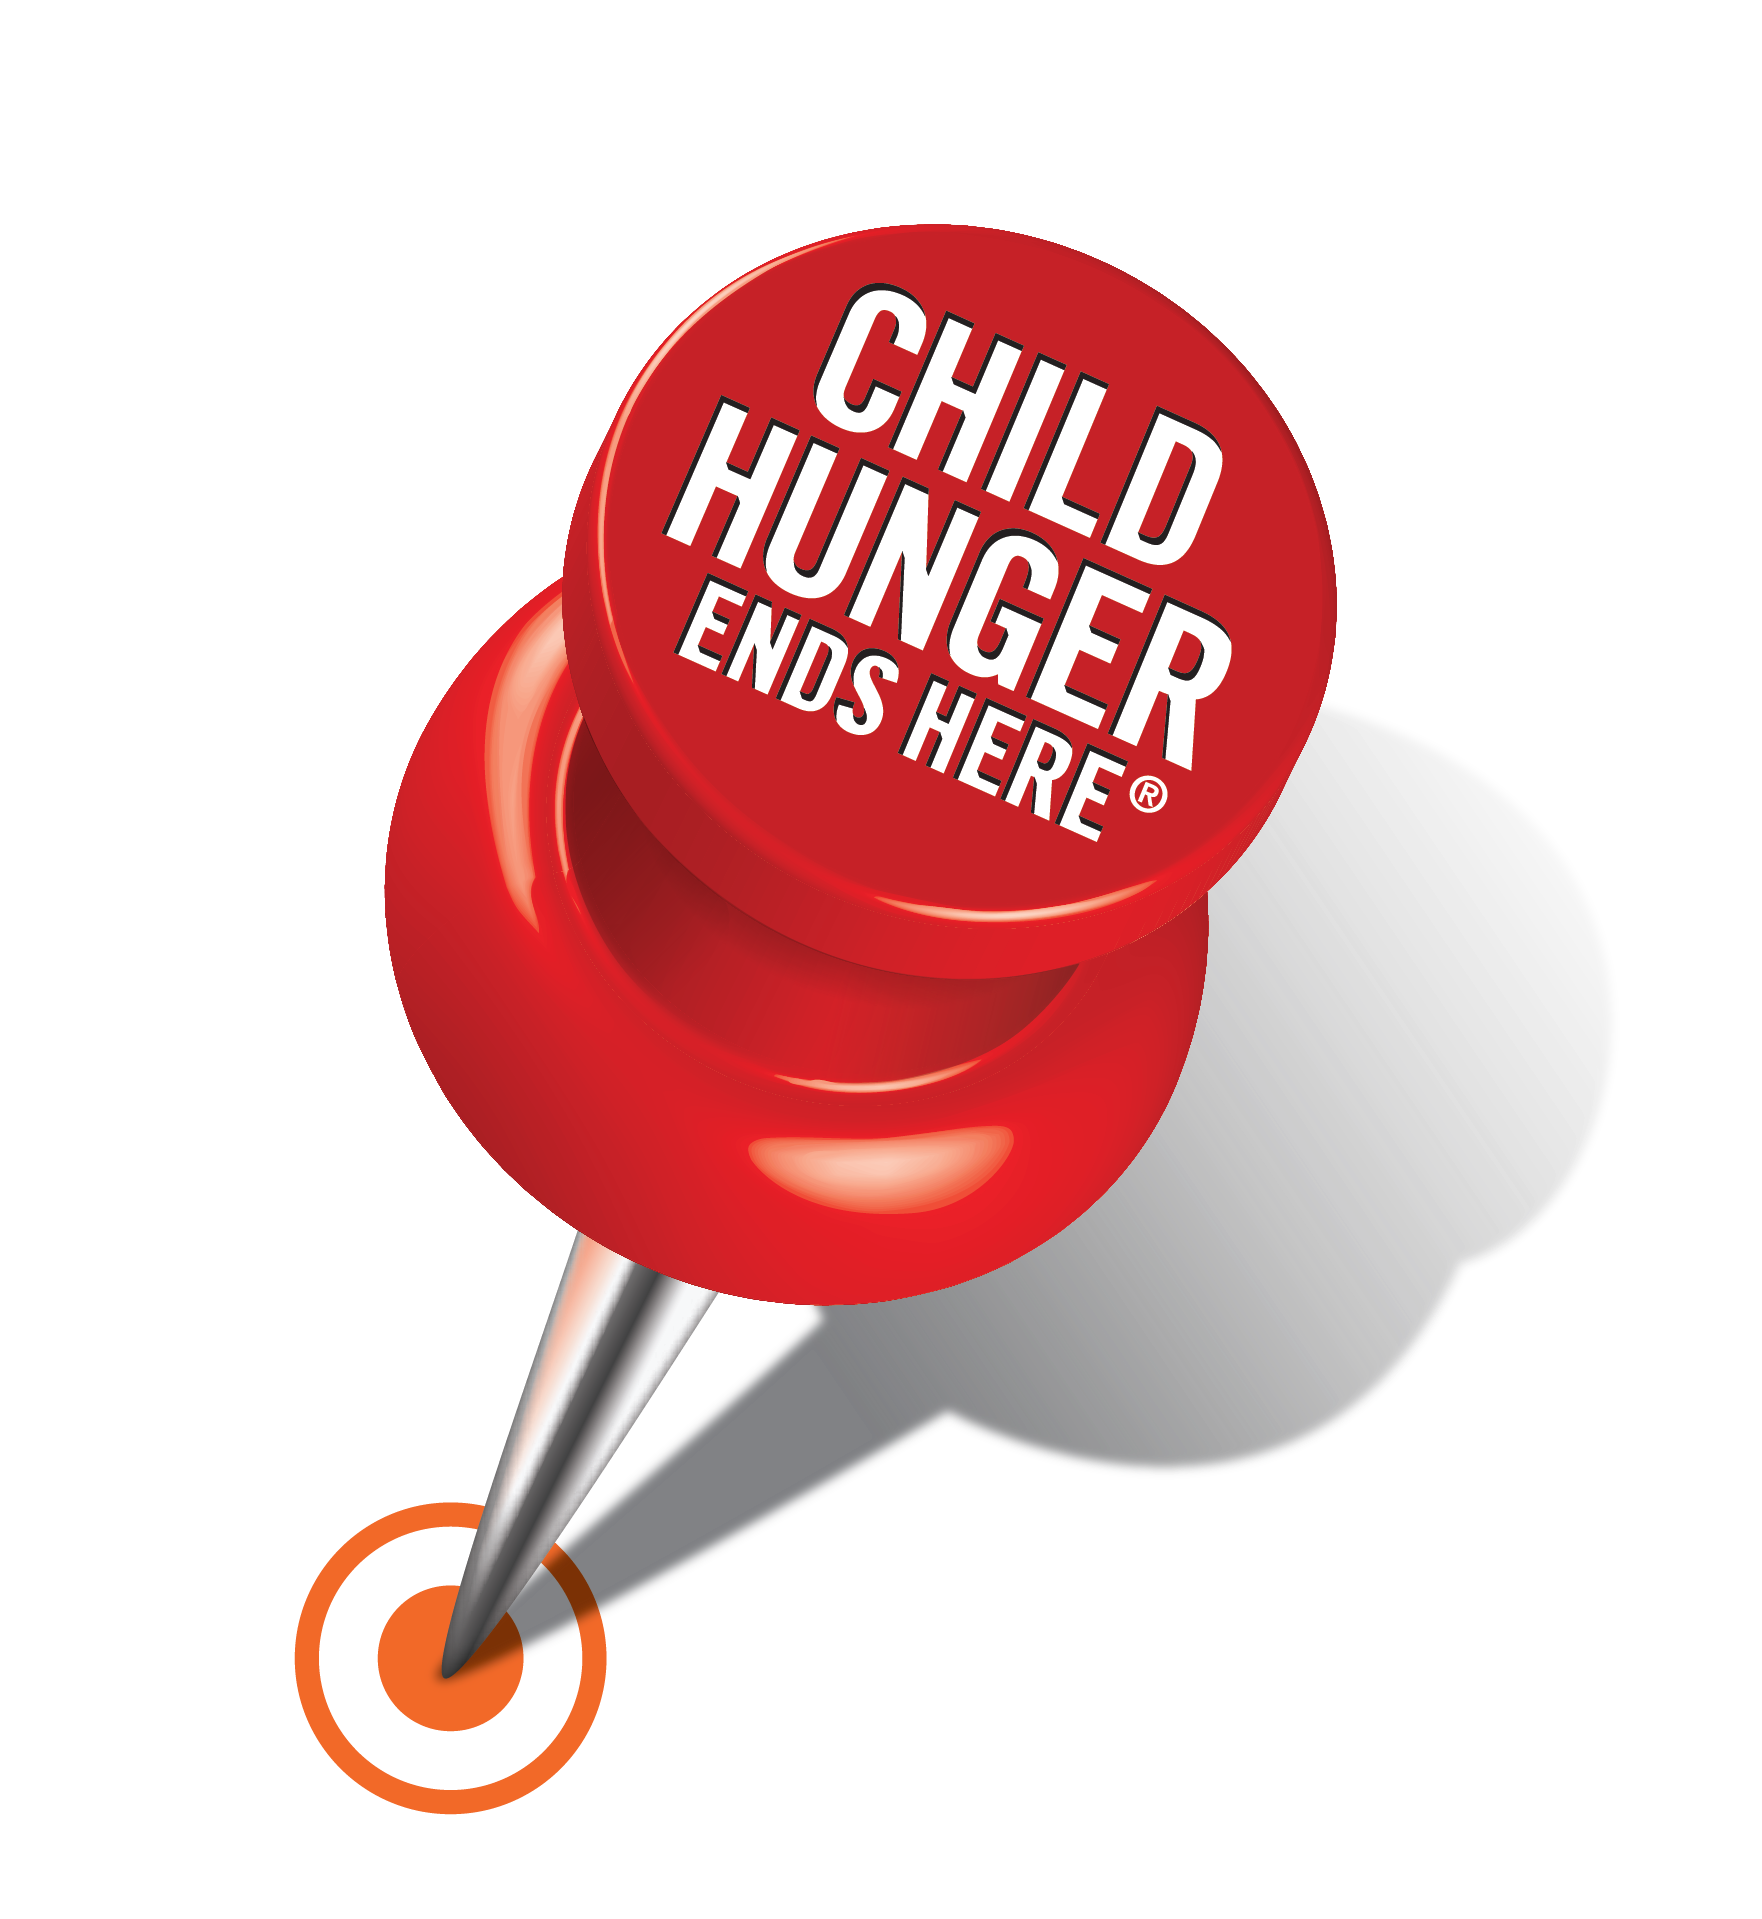 Child hunger ends here. Hungry clipart hungry family